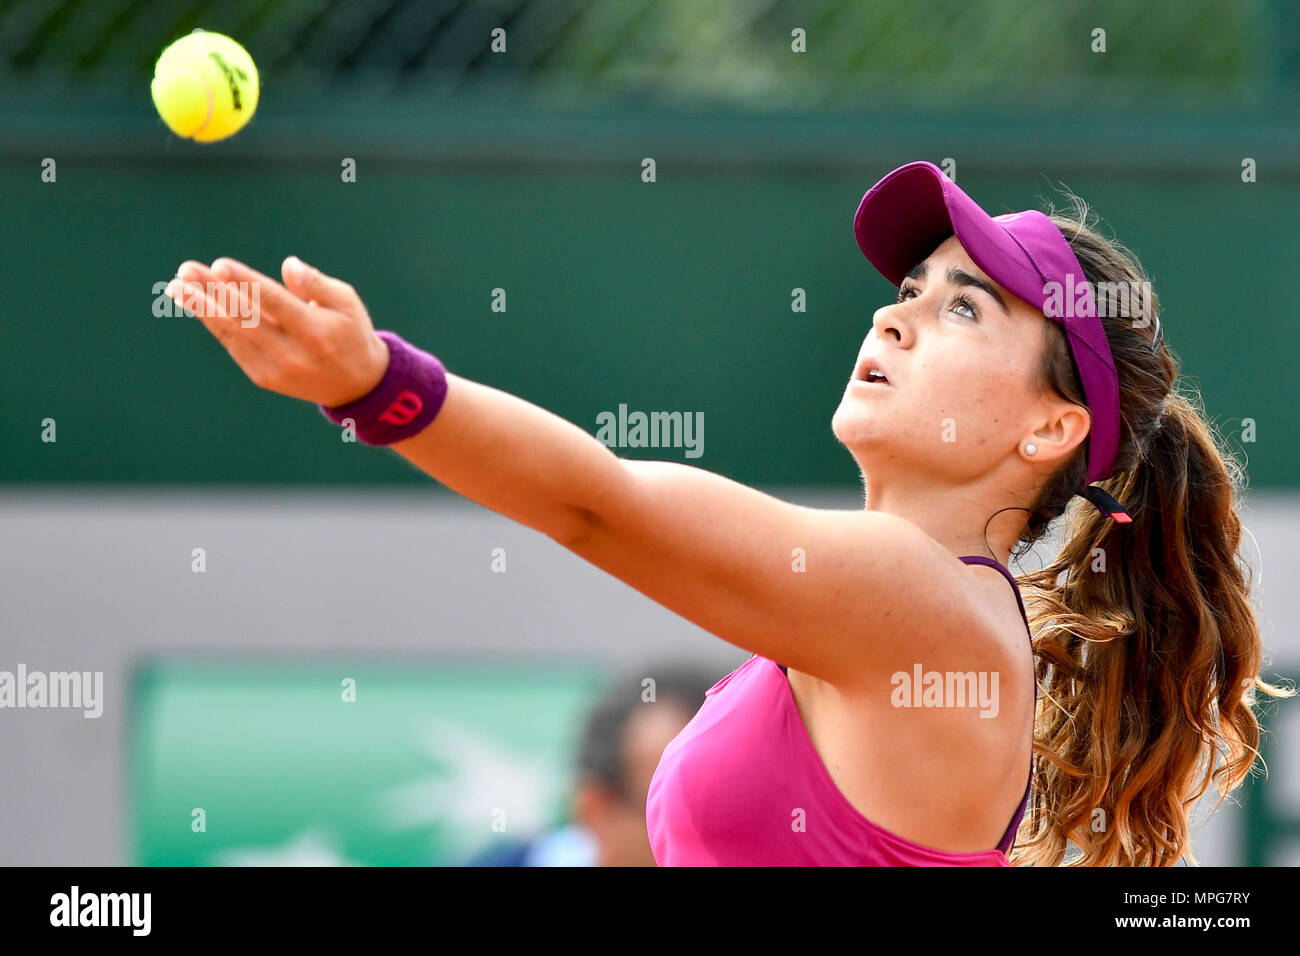 Paris. 23rd May, 2018. Gabriella Taylor of Britain serves to Lu Jingjing of China during the women's singles Qualification 1st round match of French Open in Paris, France on May 23, 2018. Gabriella Taylor won 2-0. Credit: Chen Yichen/Xinhua/Alamy Live News Stock Photo